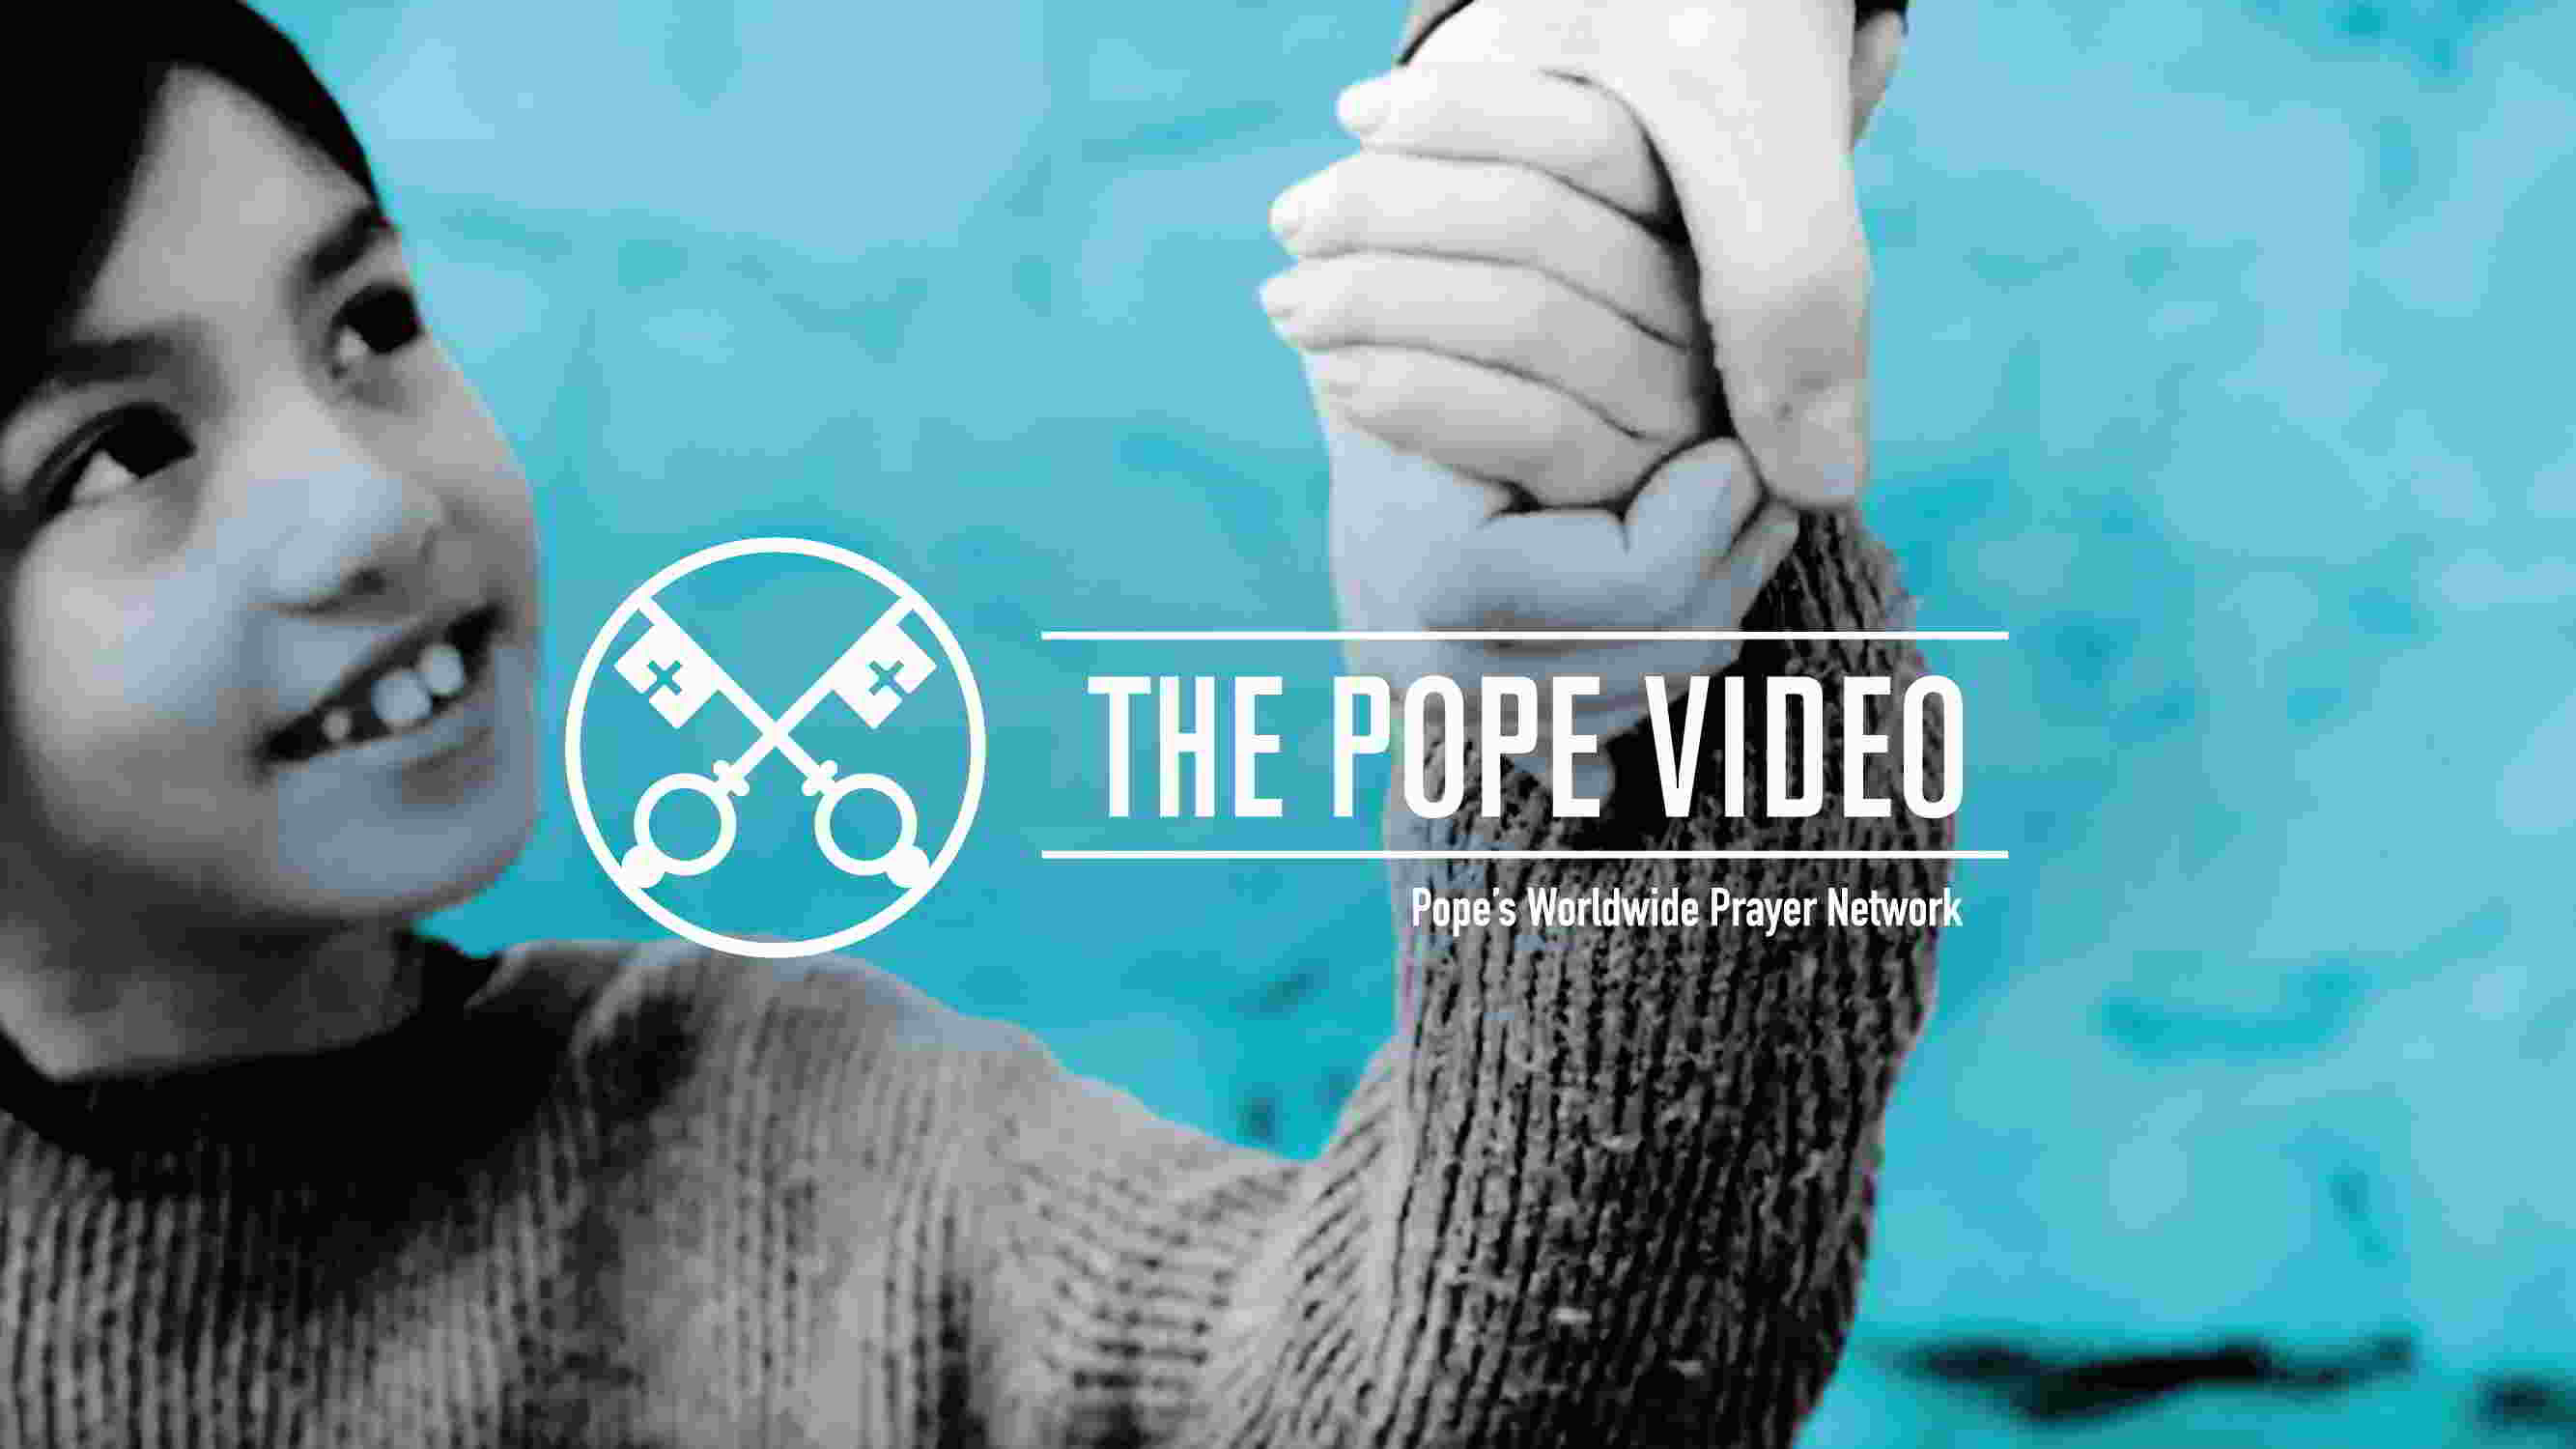 Official-Image-TPV-12-2019-EN-The-Pope-Video-The-future-of-the-very-young